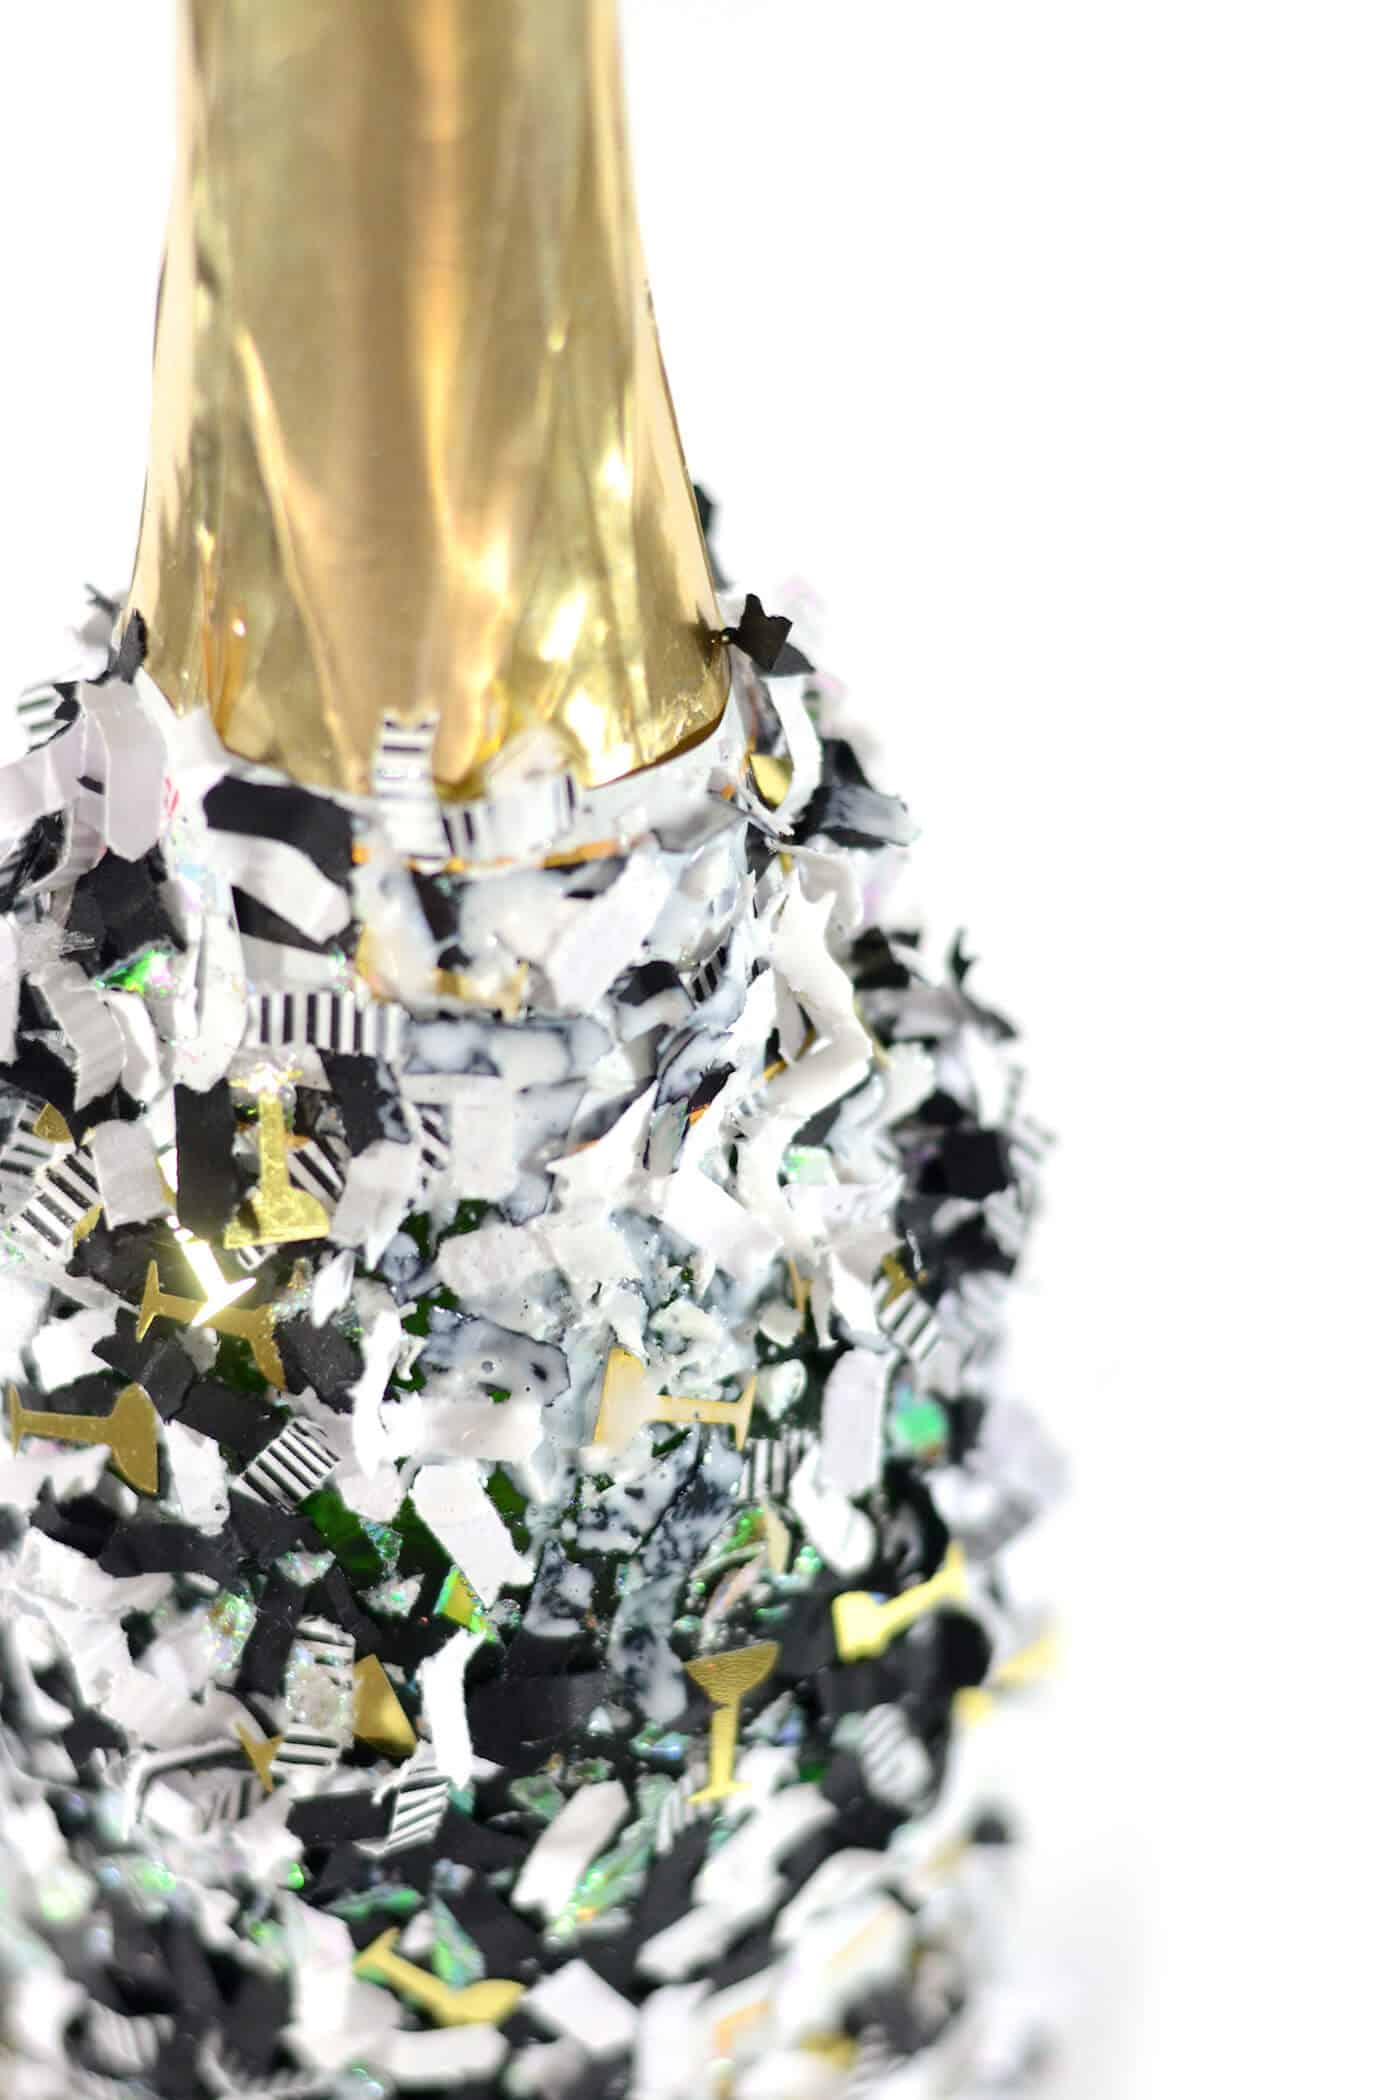 Confetti sprinkled on a champagne bottle